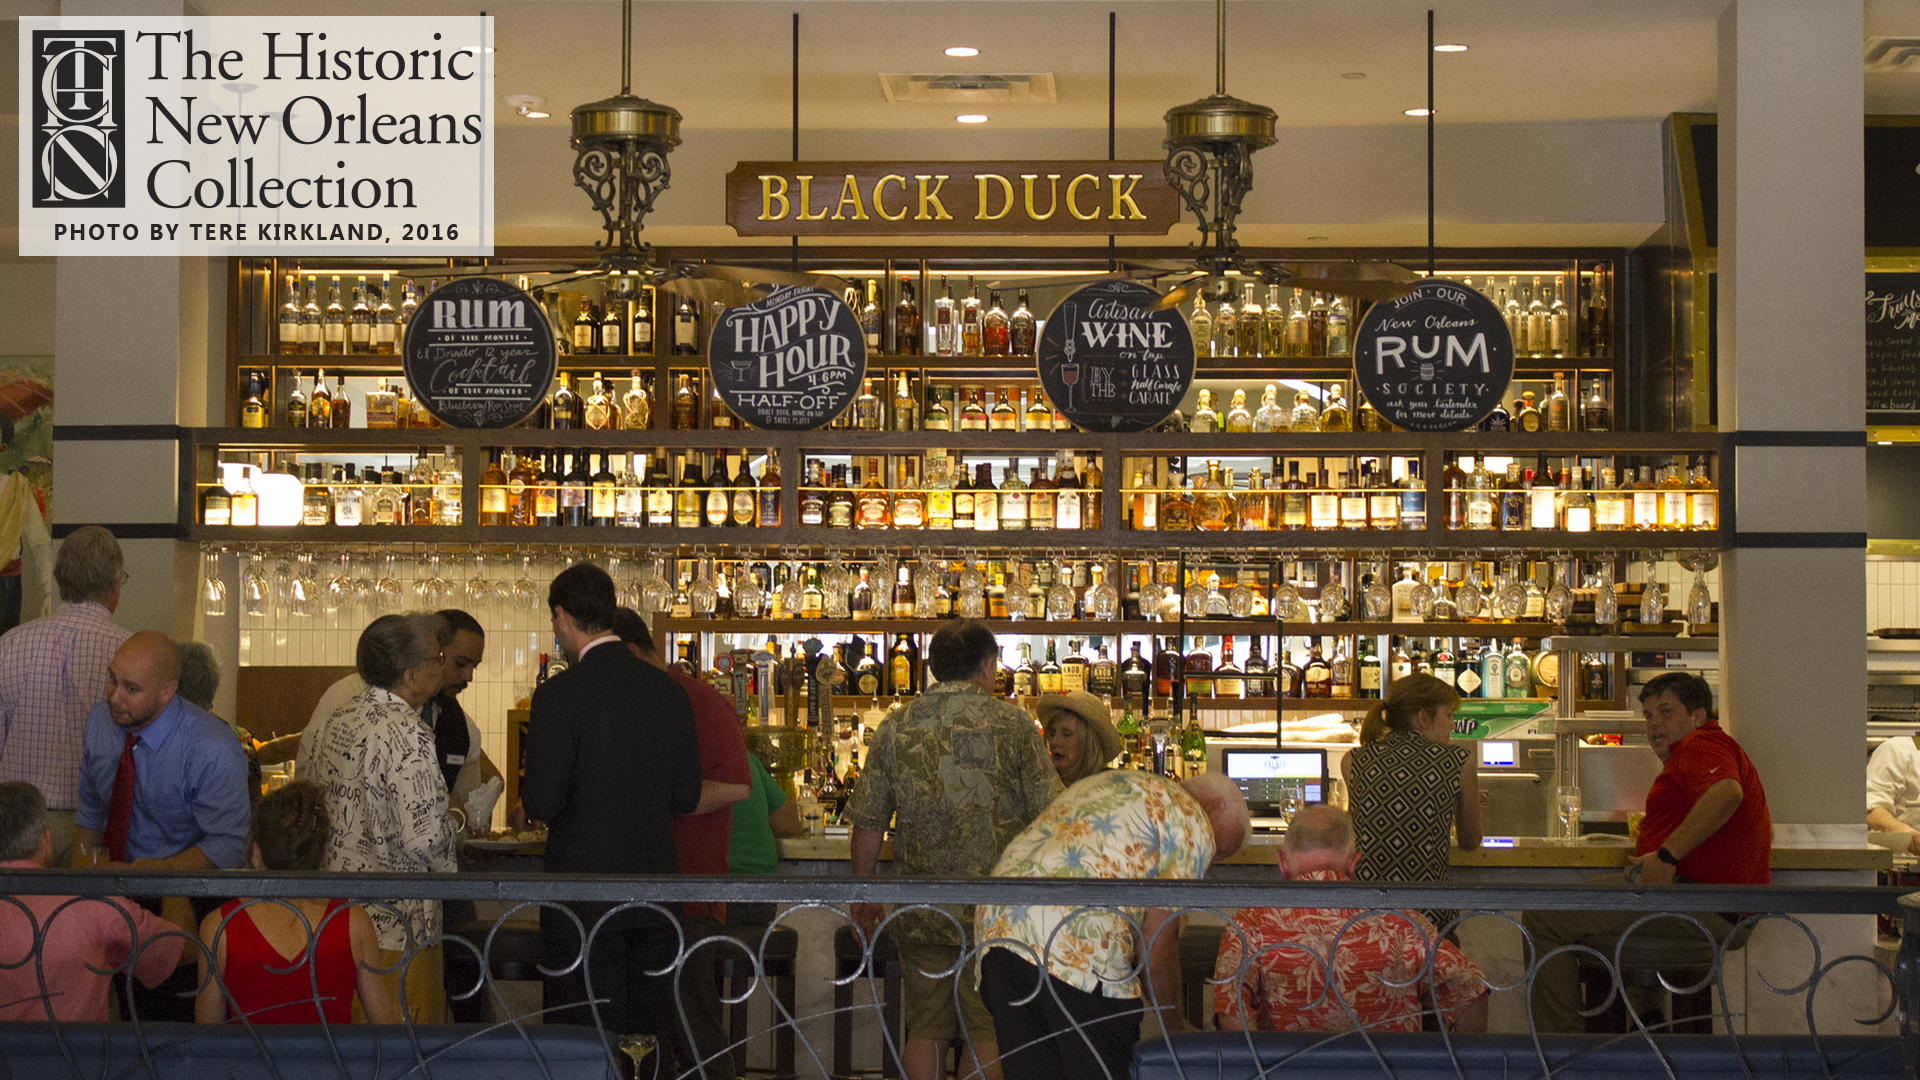 Rum Happy Hour at the Black Duck Bar, Palace Café